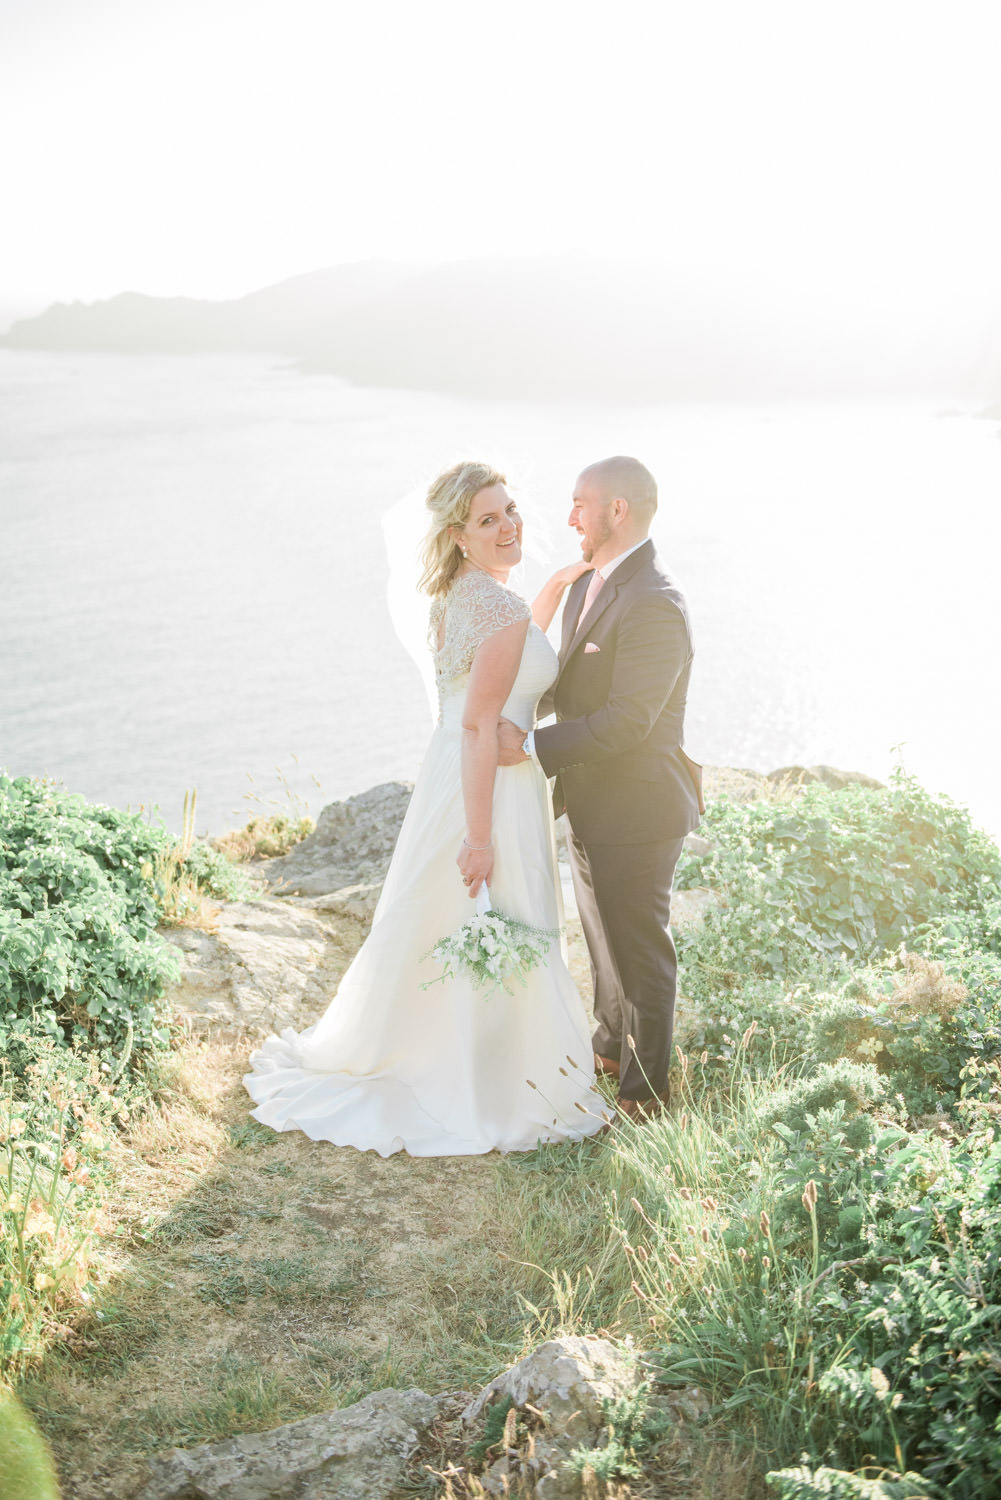 Destination wedding photographer at Guernsey